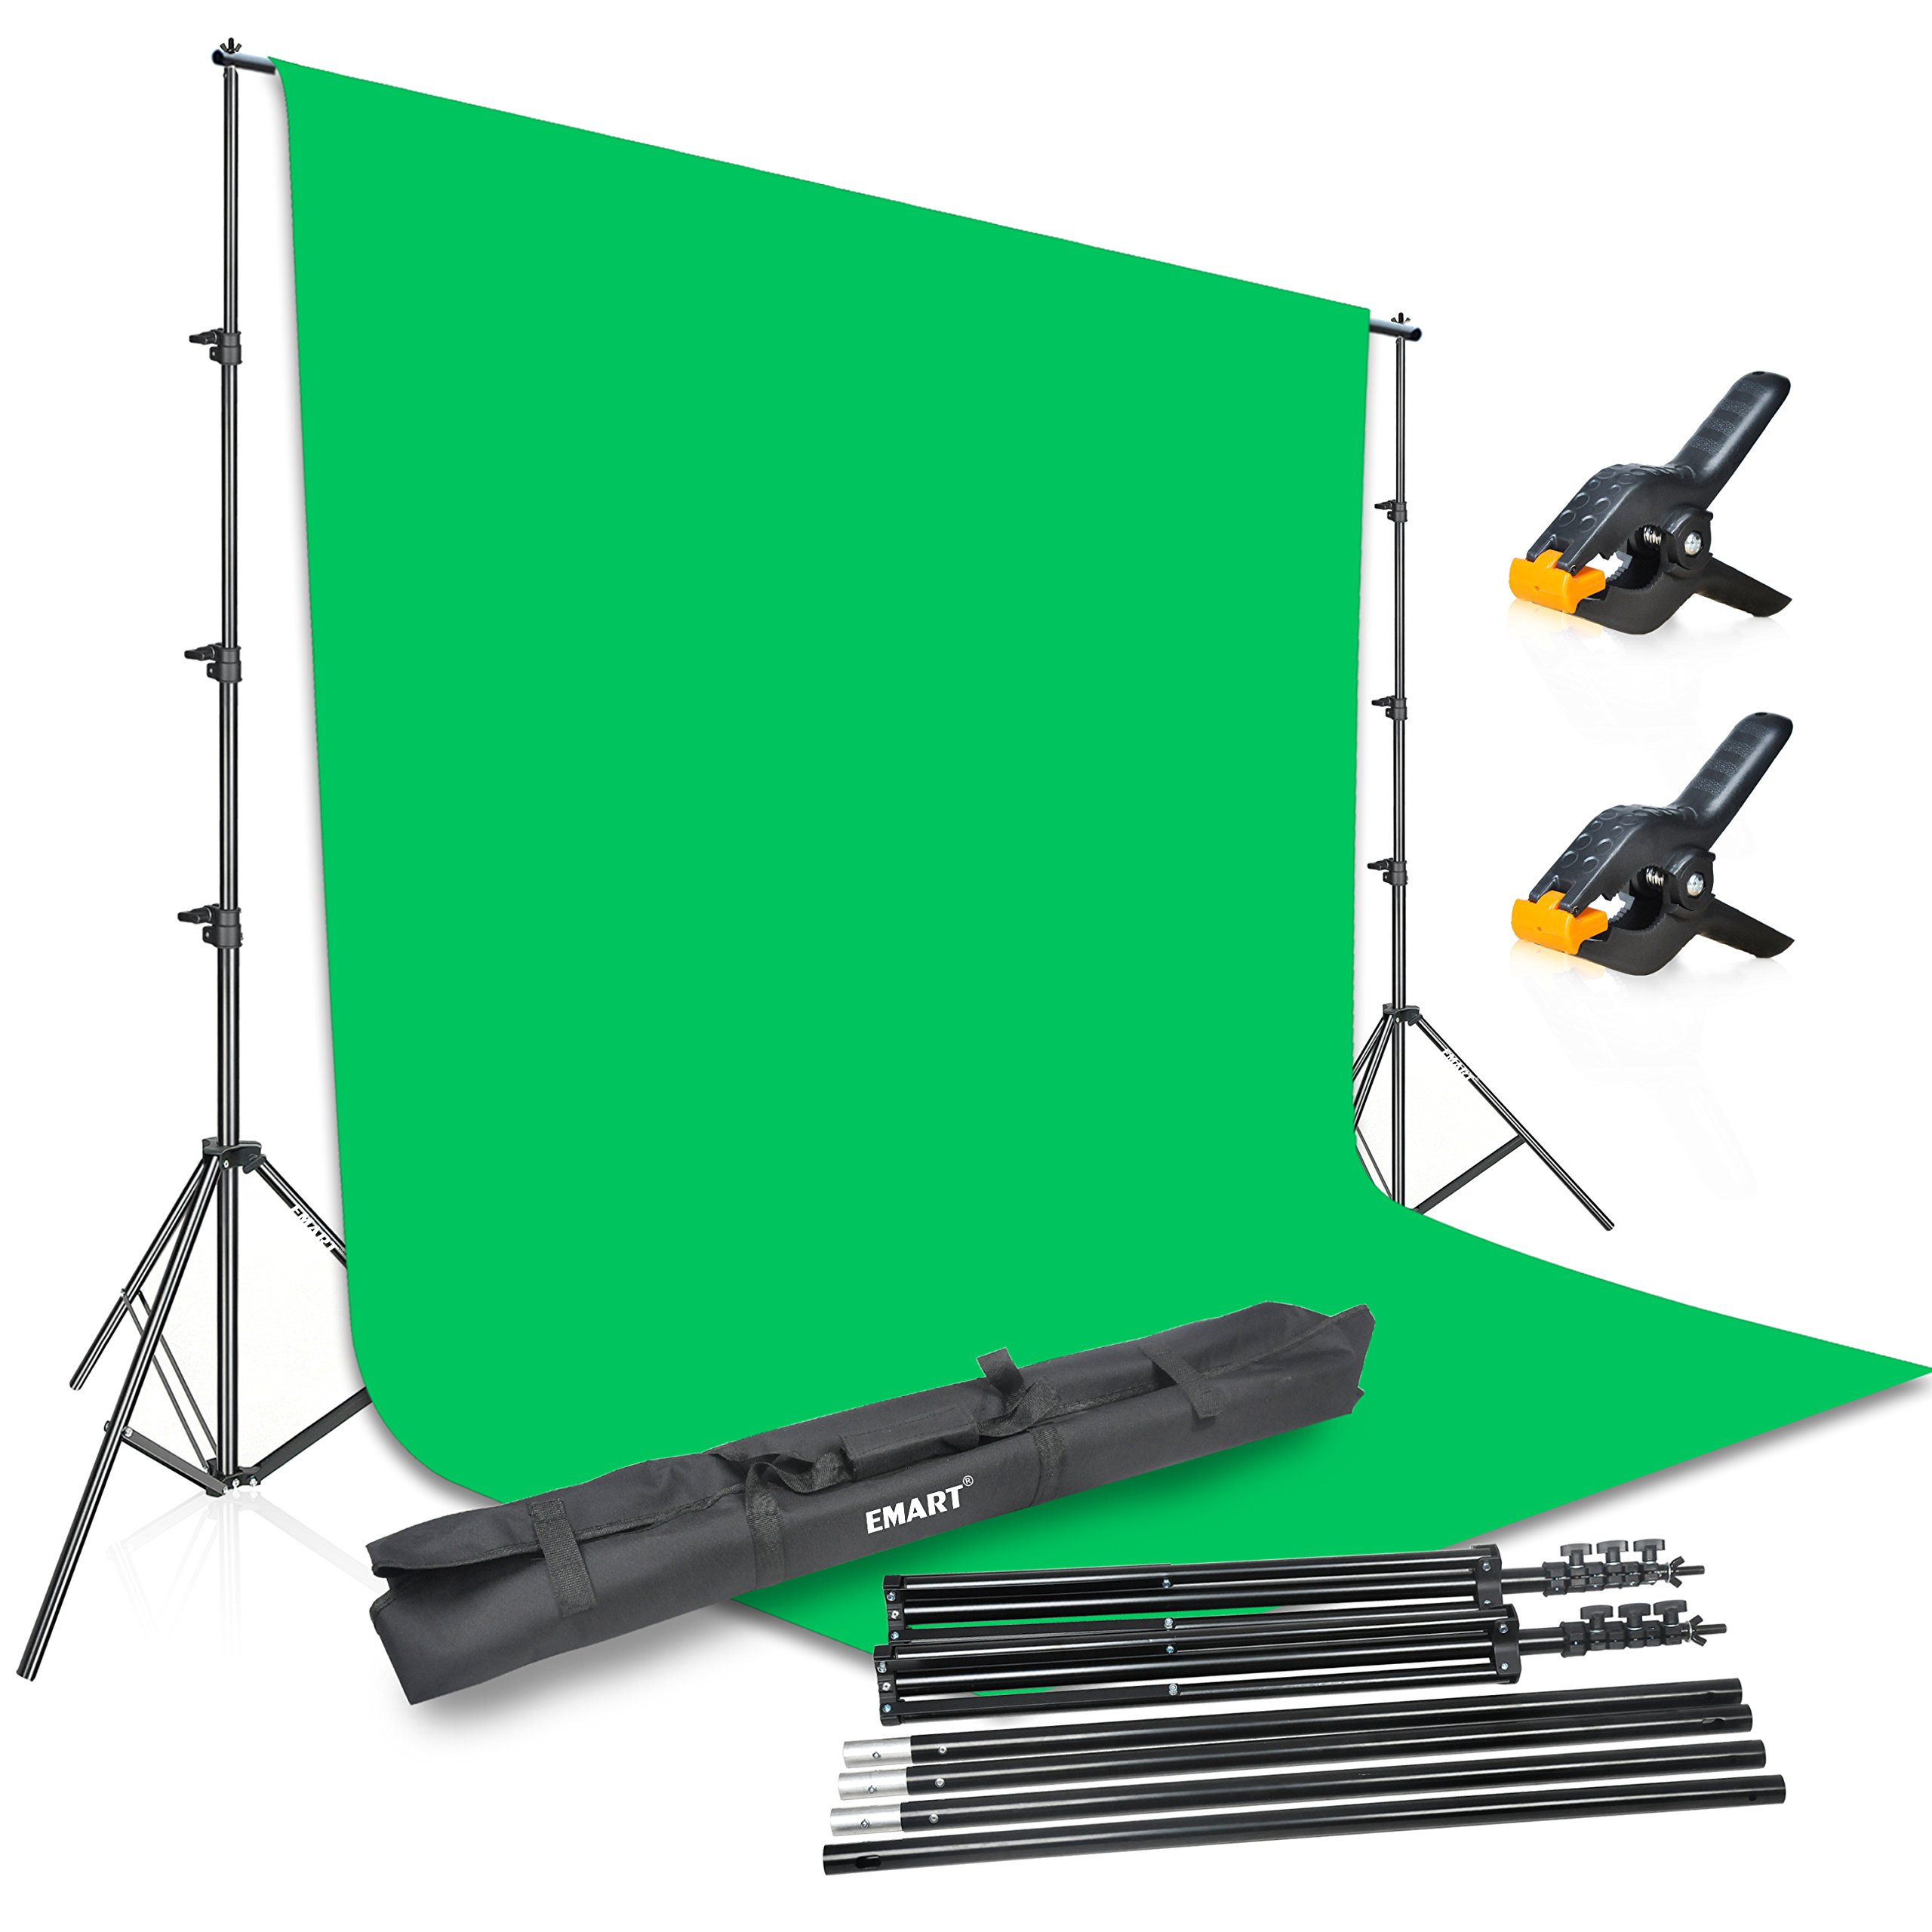 Emart Photography 8.5x10ft Background Stand Backdrop Support System Kit with 10x12ft Muslin Chromakey Green Screen for Photo Video Studio by EMART